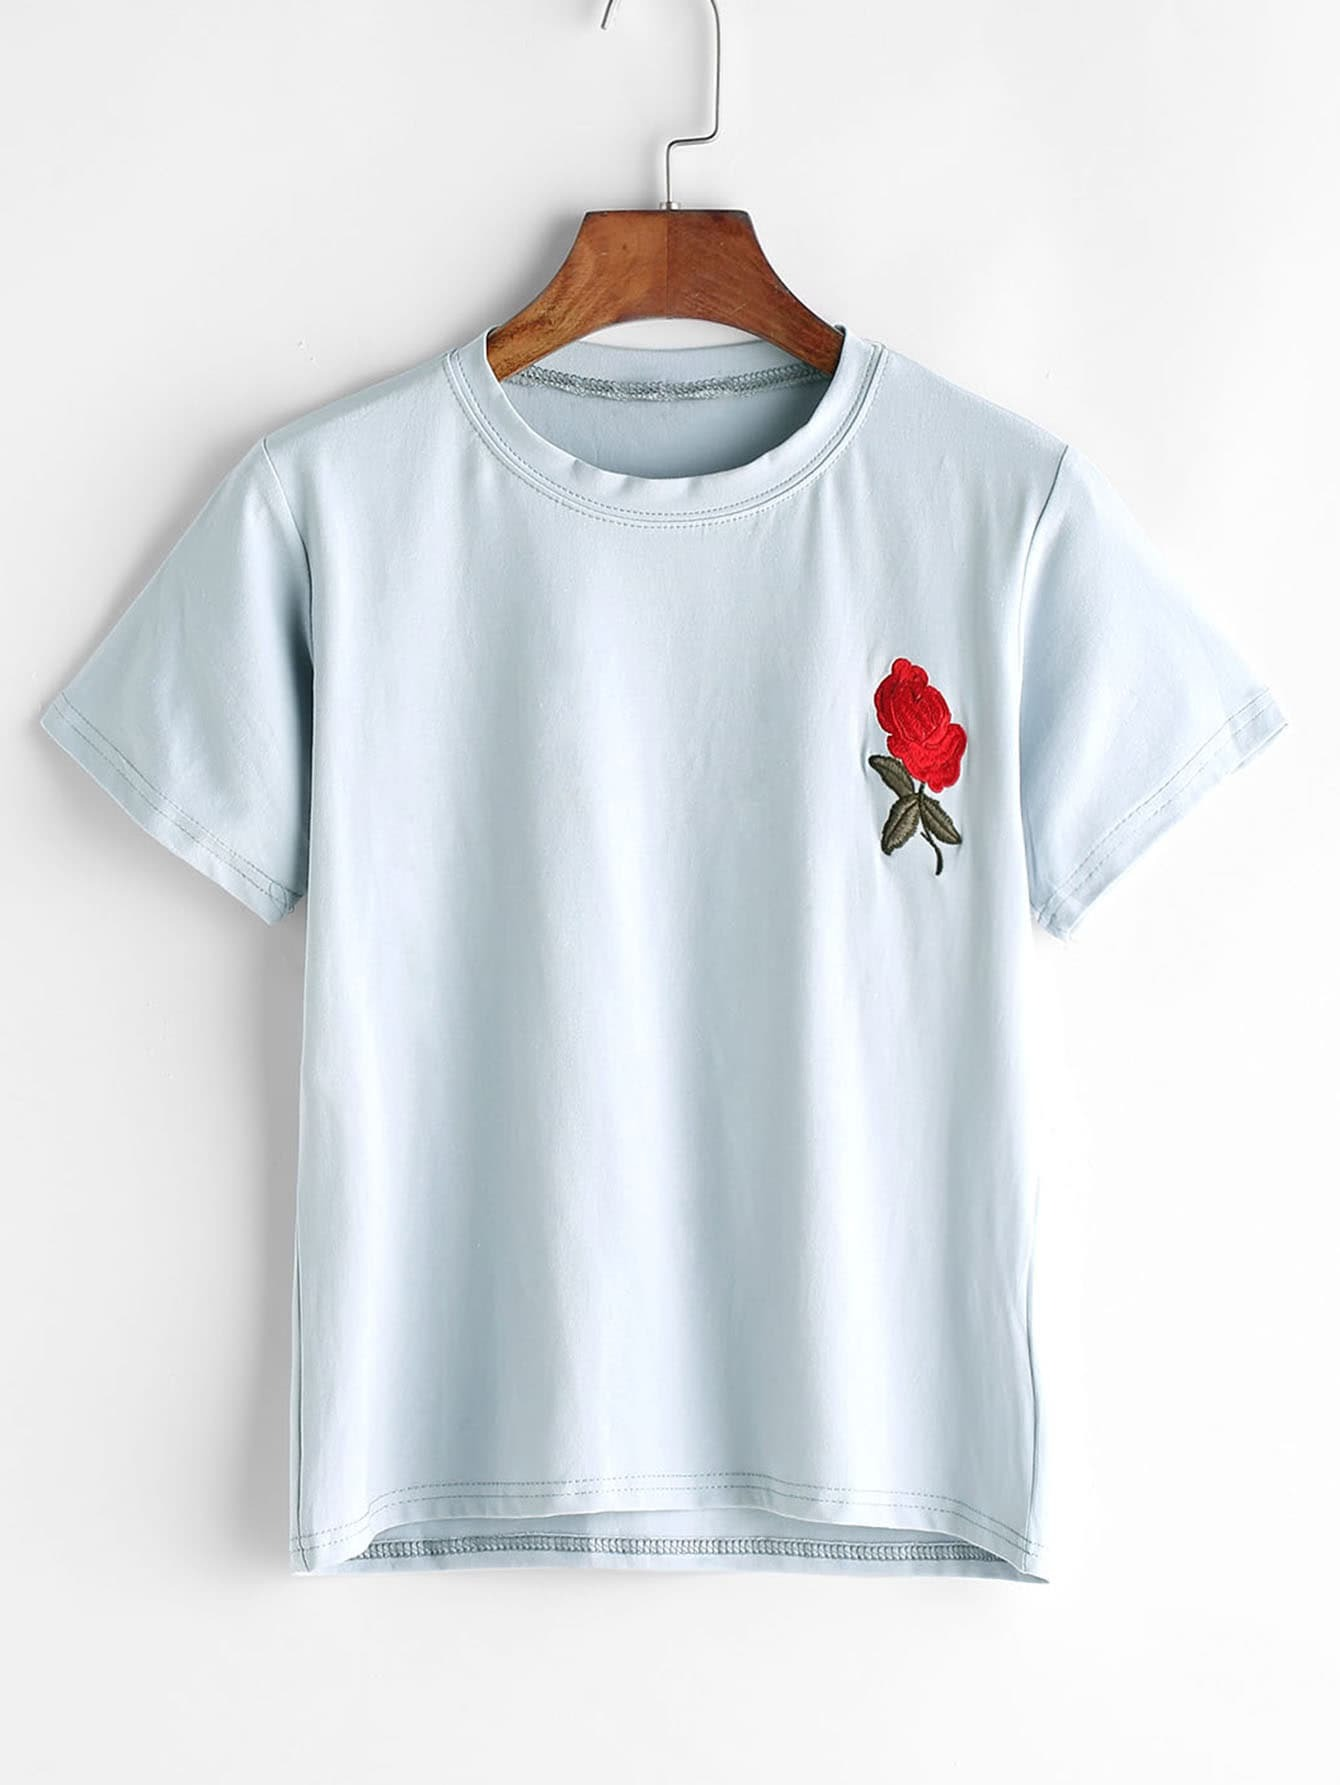 Rose embroidered t shirt